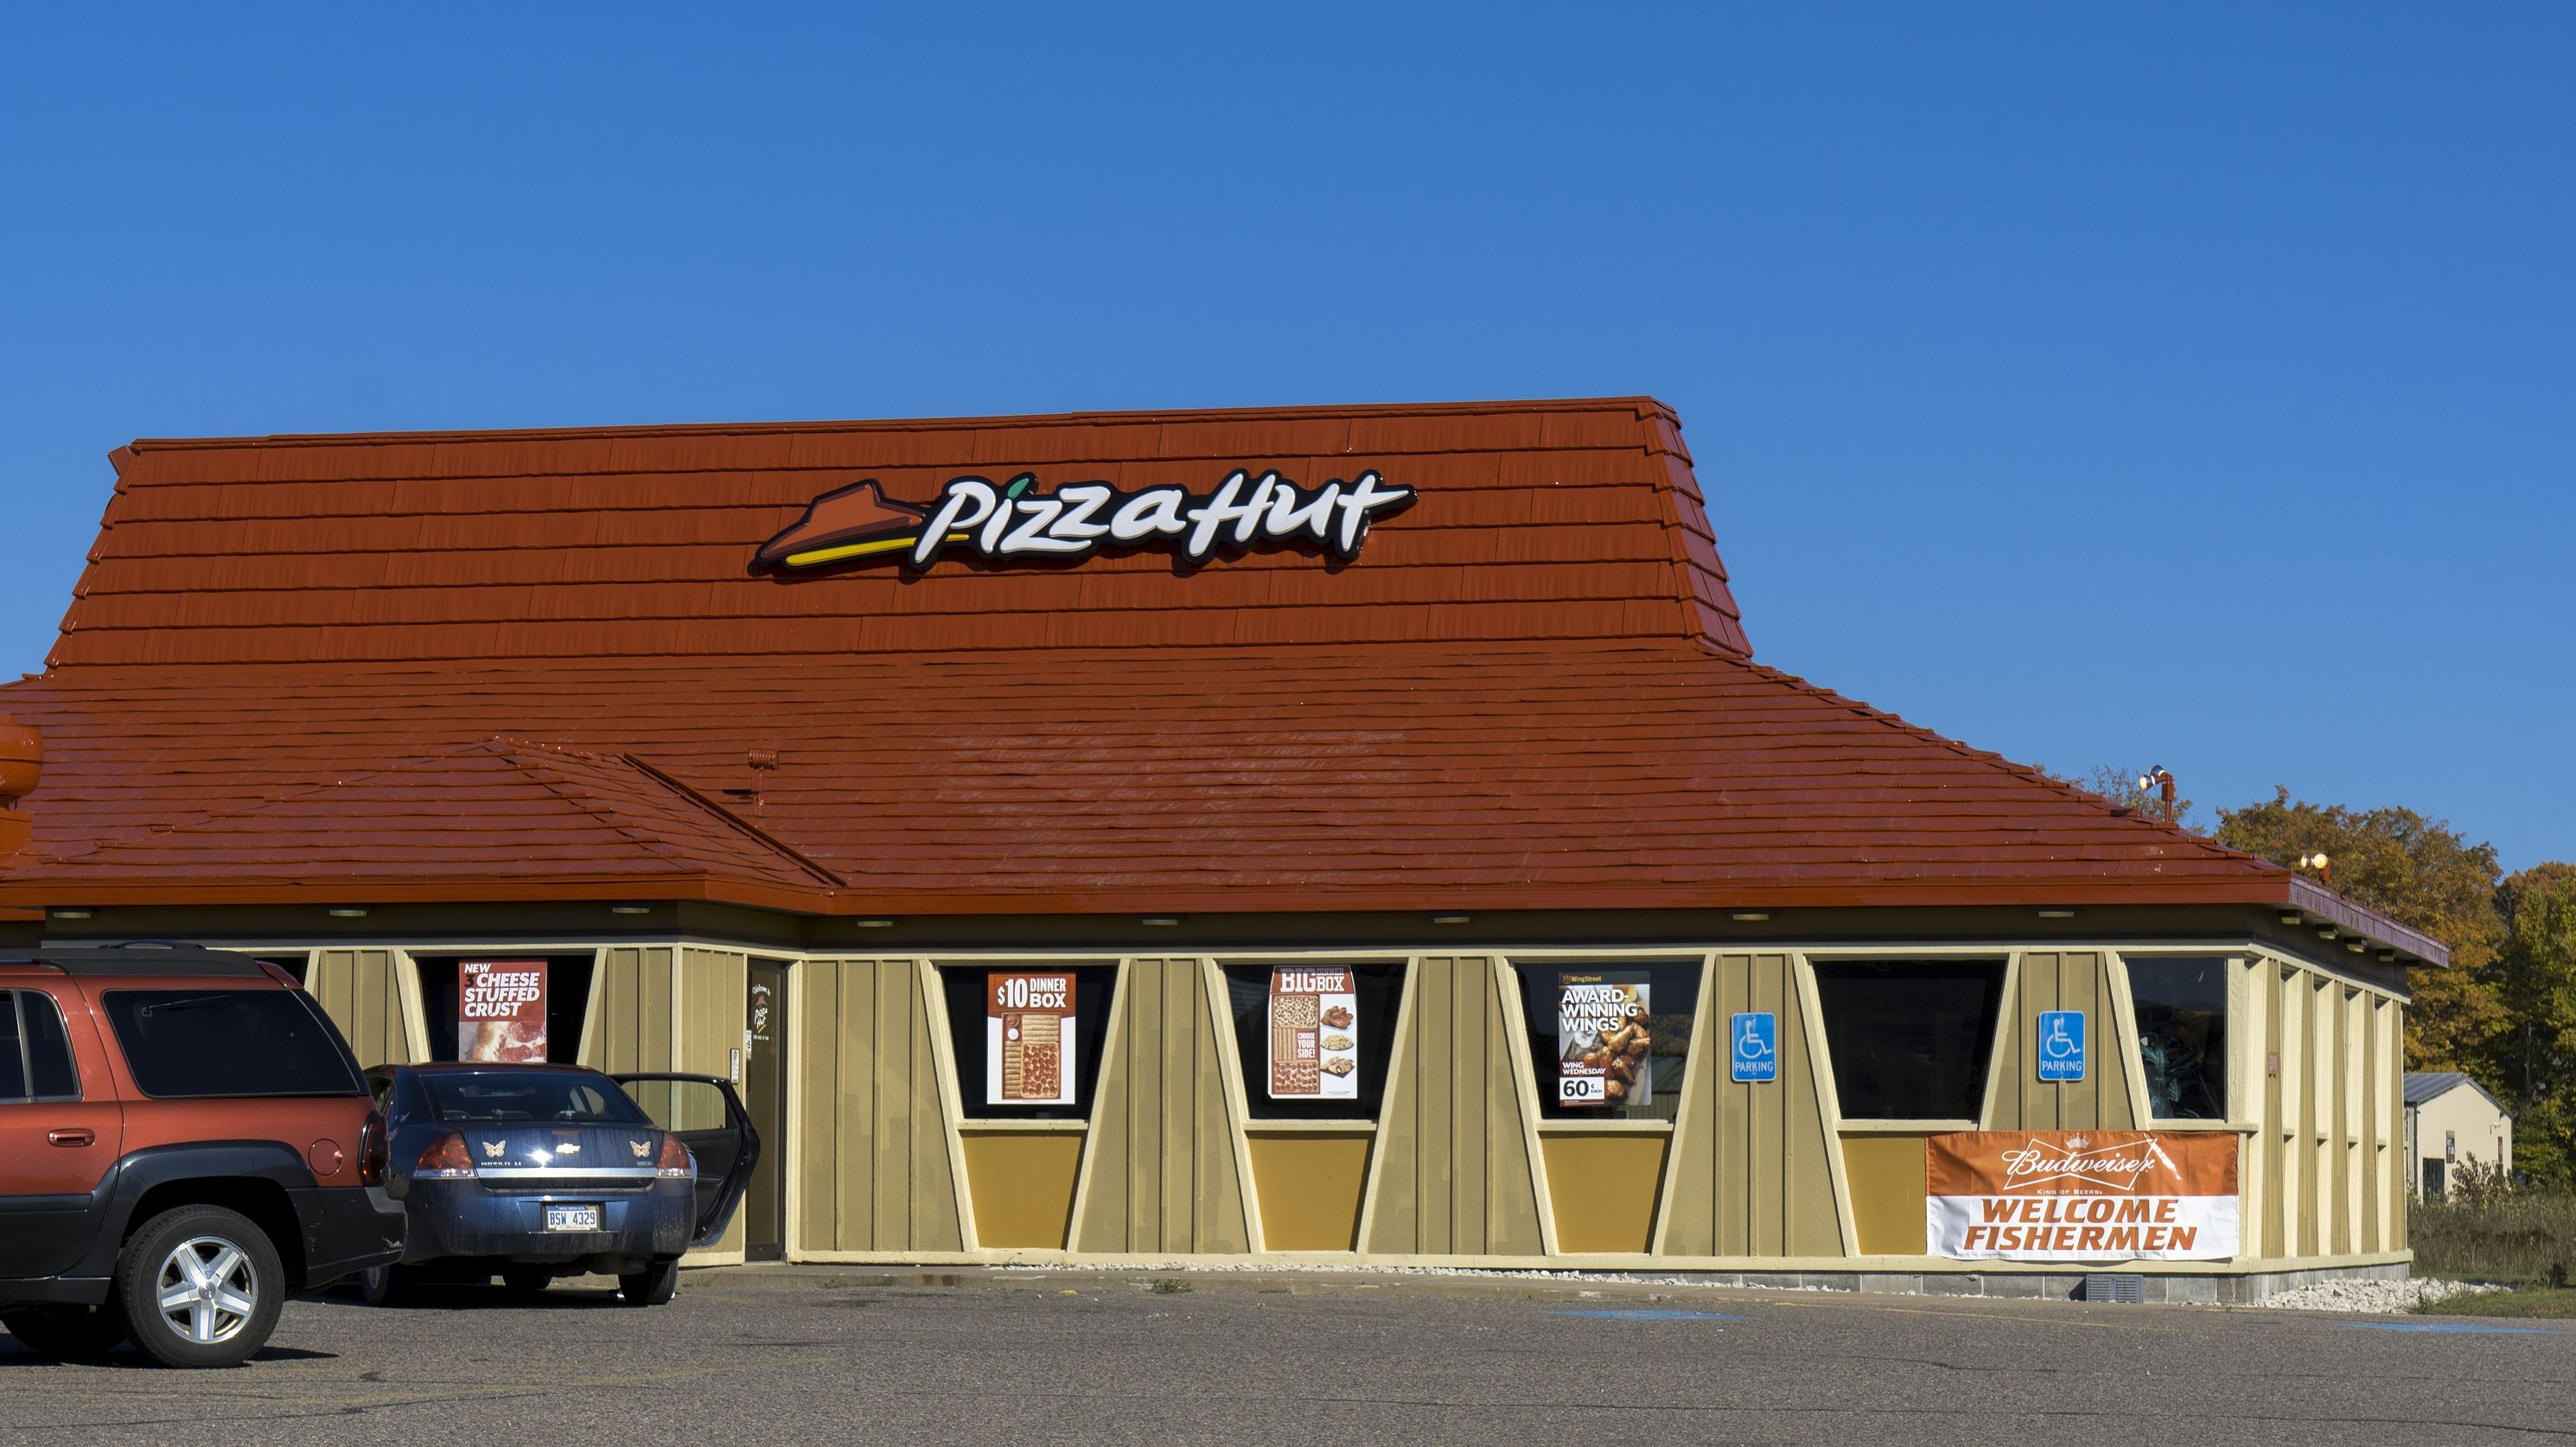 15 Delicious Facts About Pizza Hut   Mental Floss